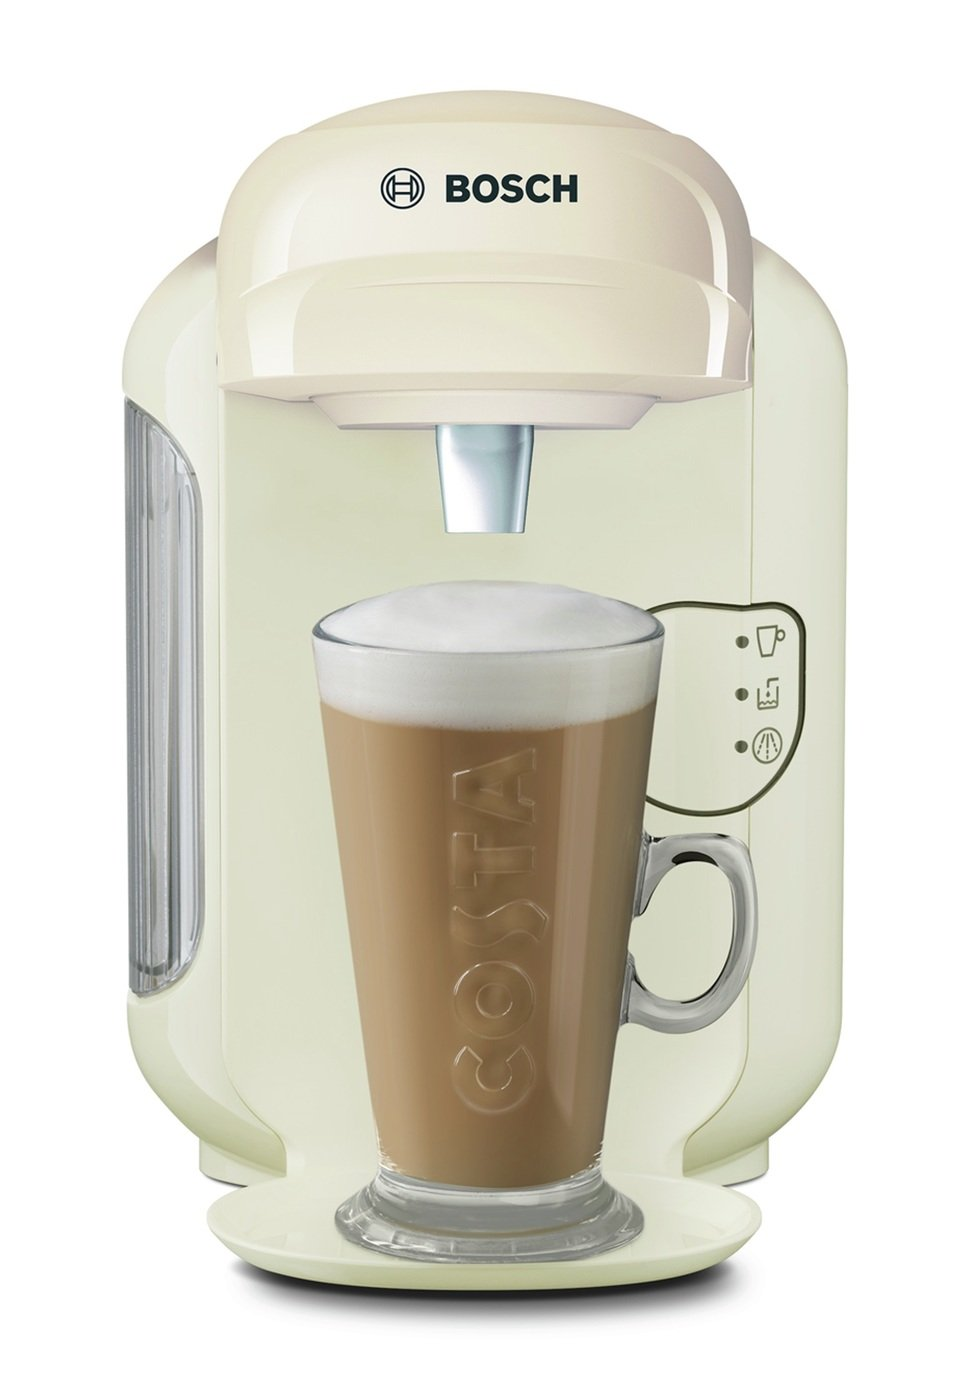 Tassimo by Bosch Vivy 2 Coffee Machine - Cream from Tassimo